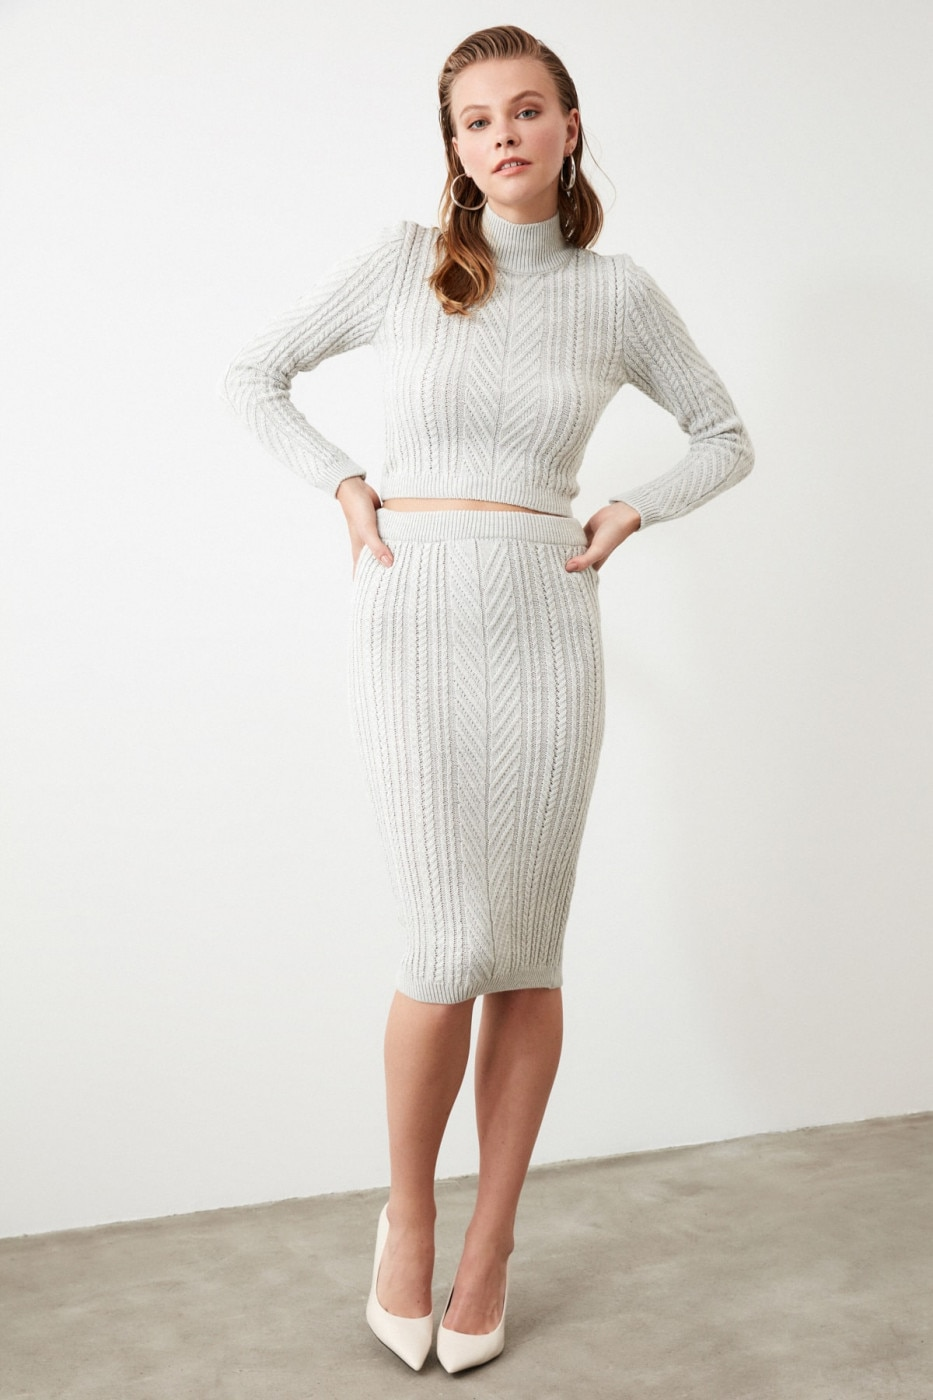 Trendyol Grey Braided Skirt Cossack Knitwear Bottom-Top Team